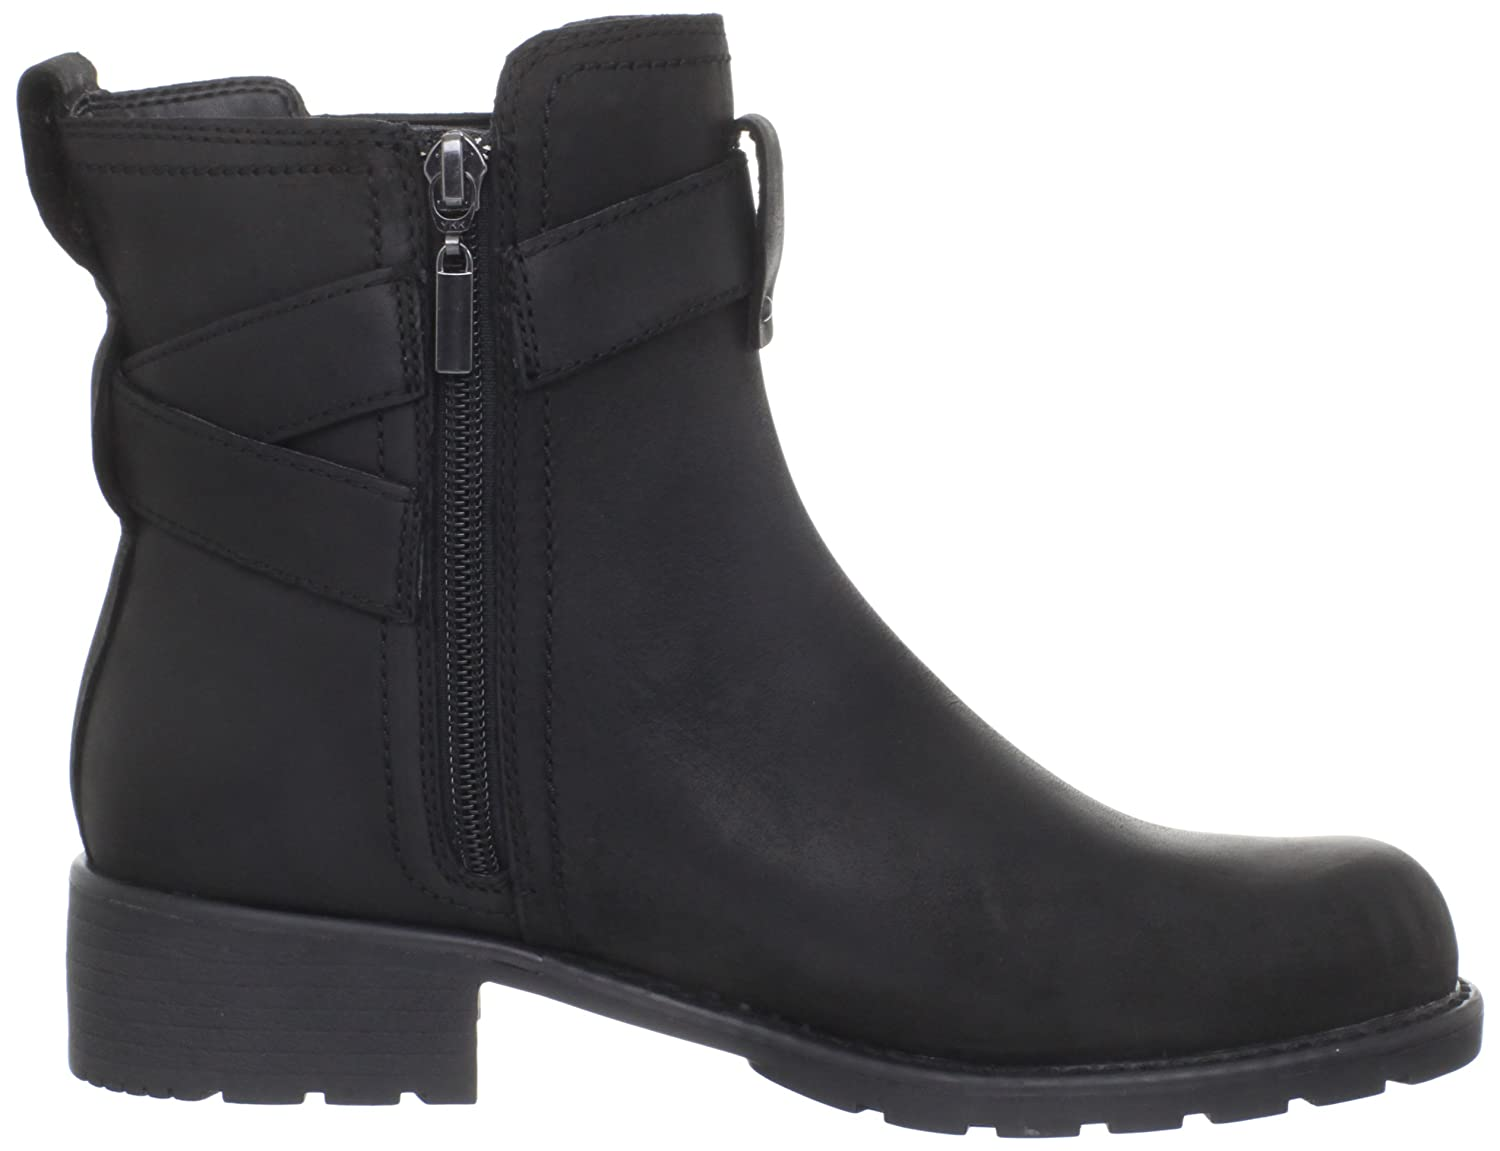 Amazon.com | Clarks Women's Orinocco Leap Motorcycle Boot, Black, 8.5 M US  | Ankle & Bootie